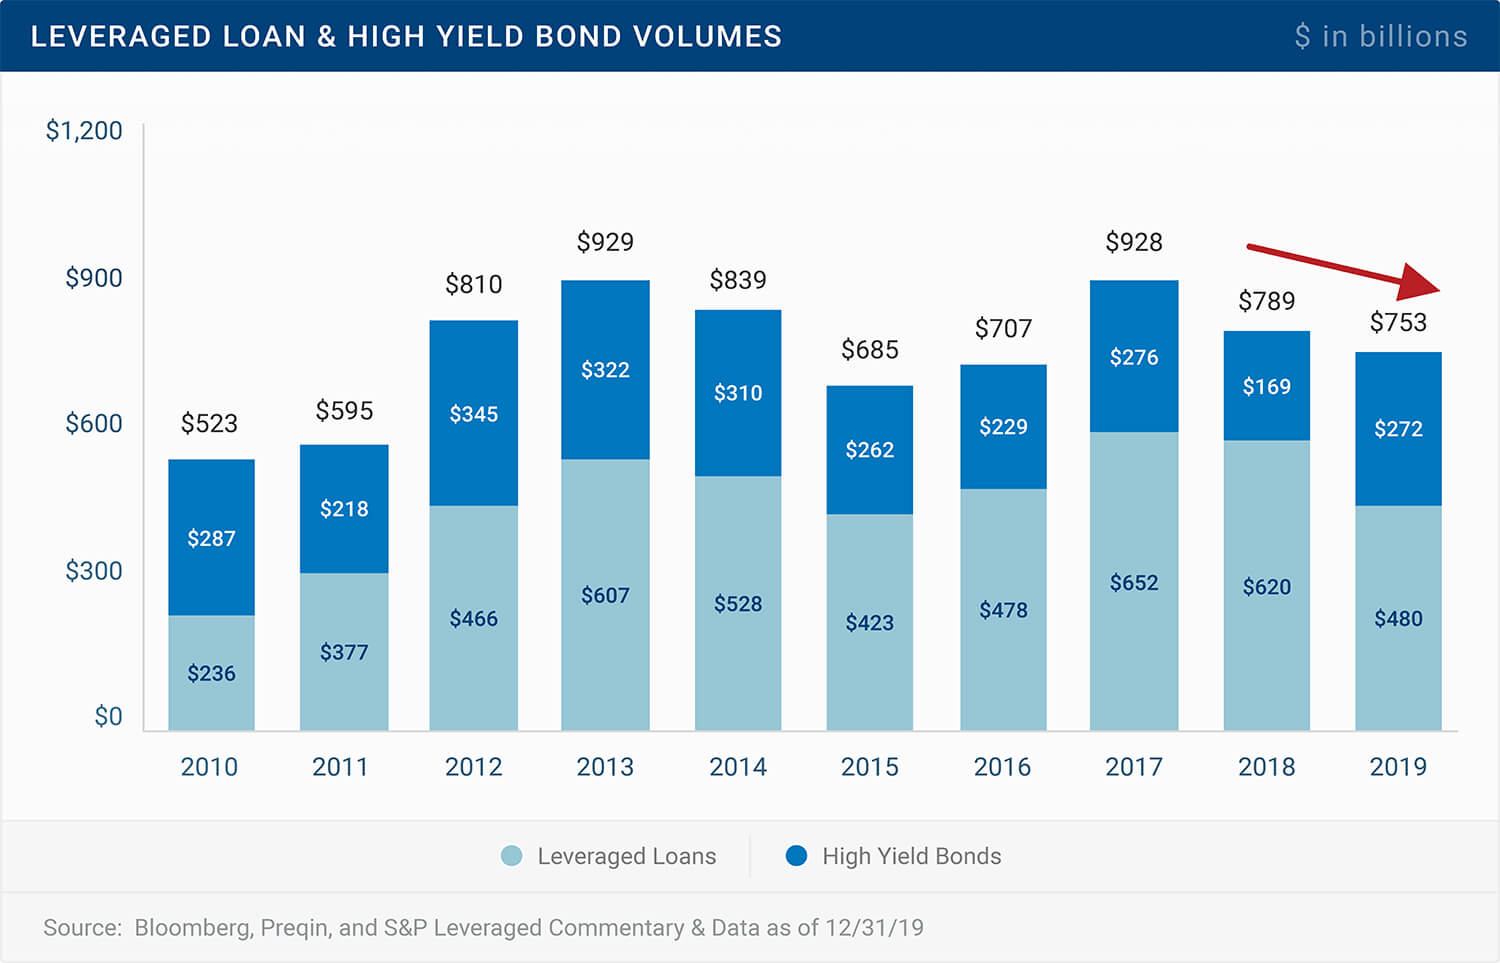 Leveraged Loan & High Yield Bond Volumes